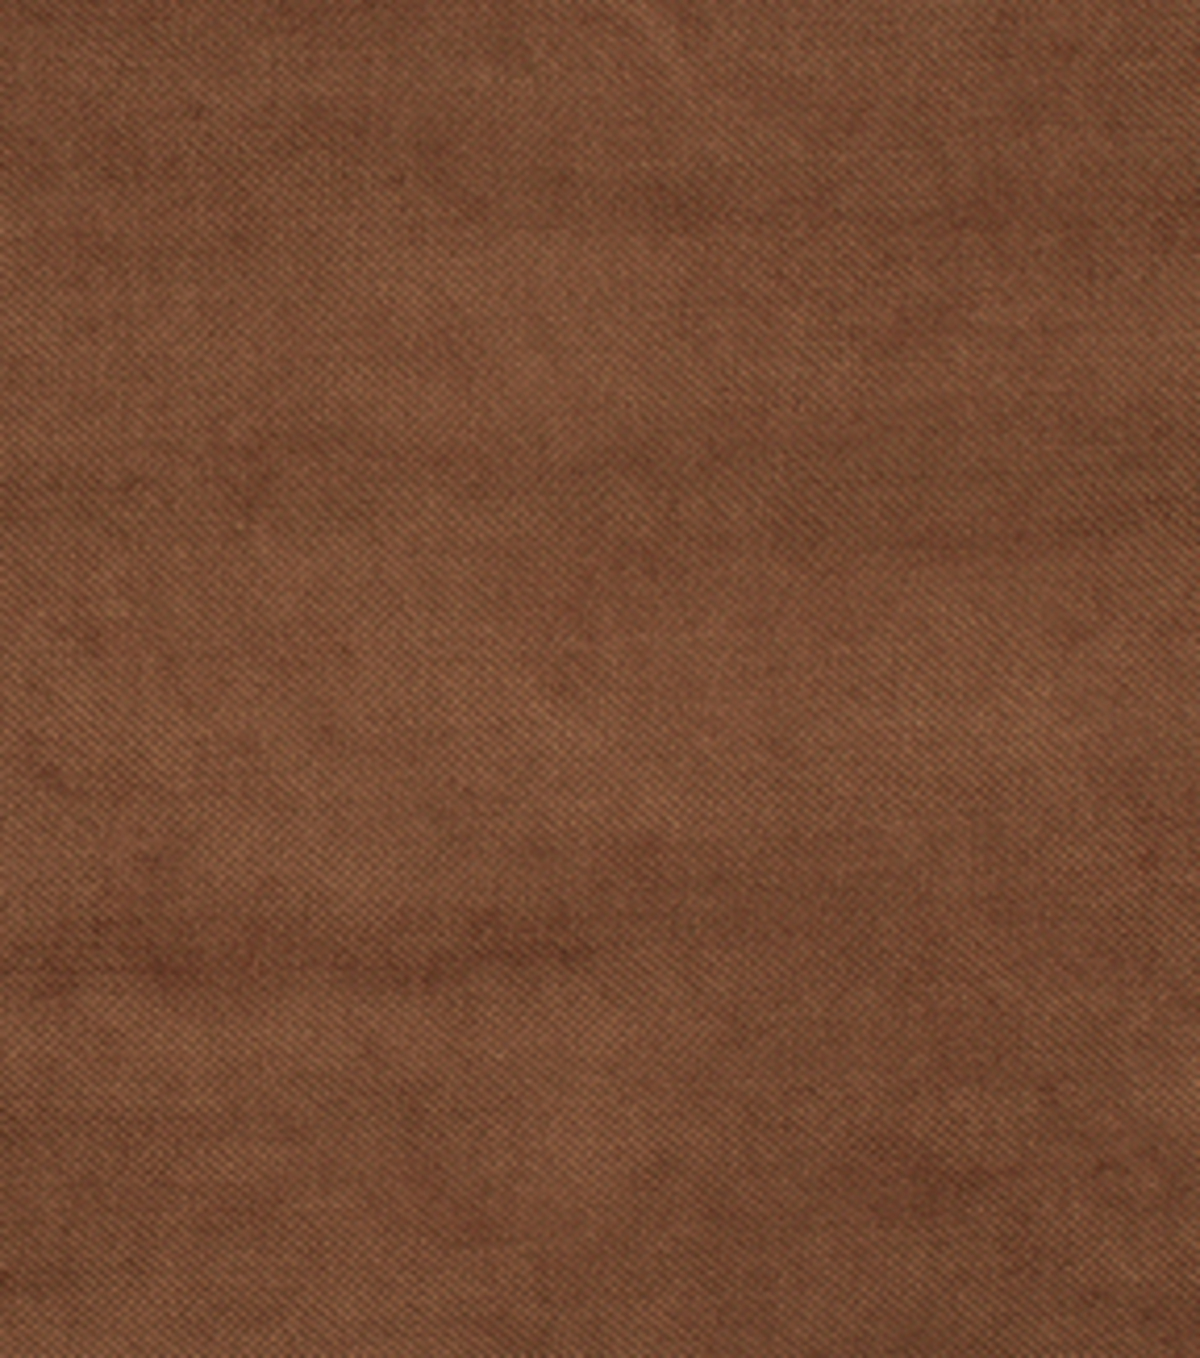 Home Decor 8\u0022x8\u0022 Fabric Swatch-Signature Series Claudel Brick